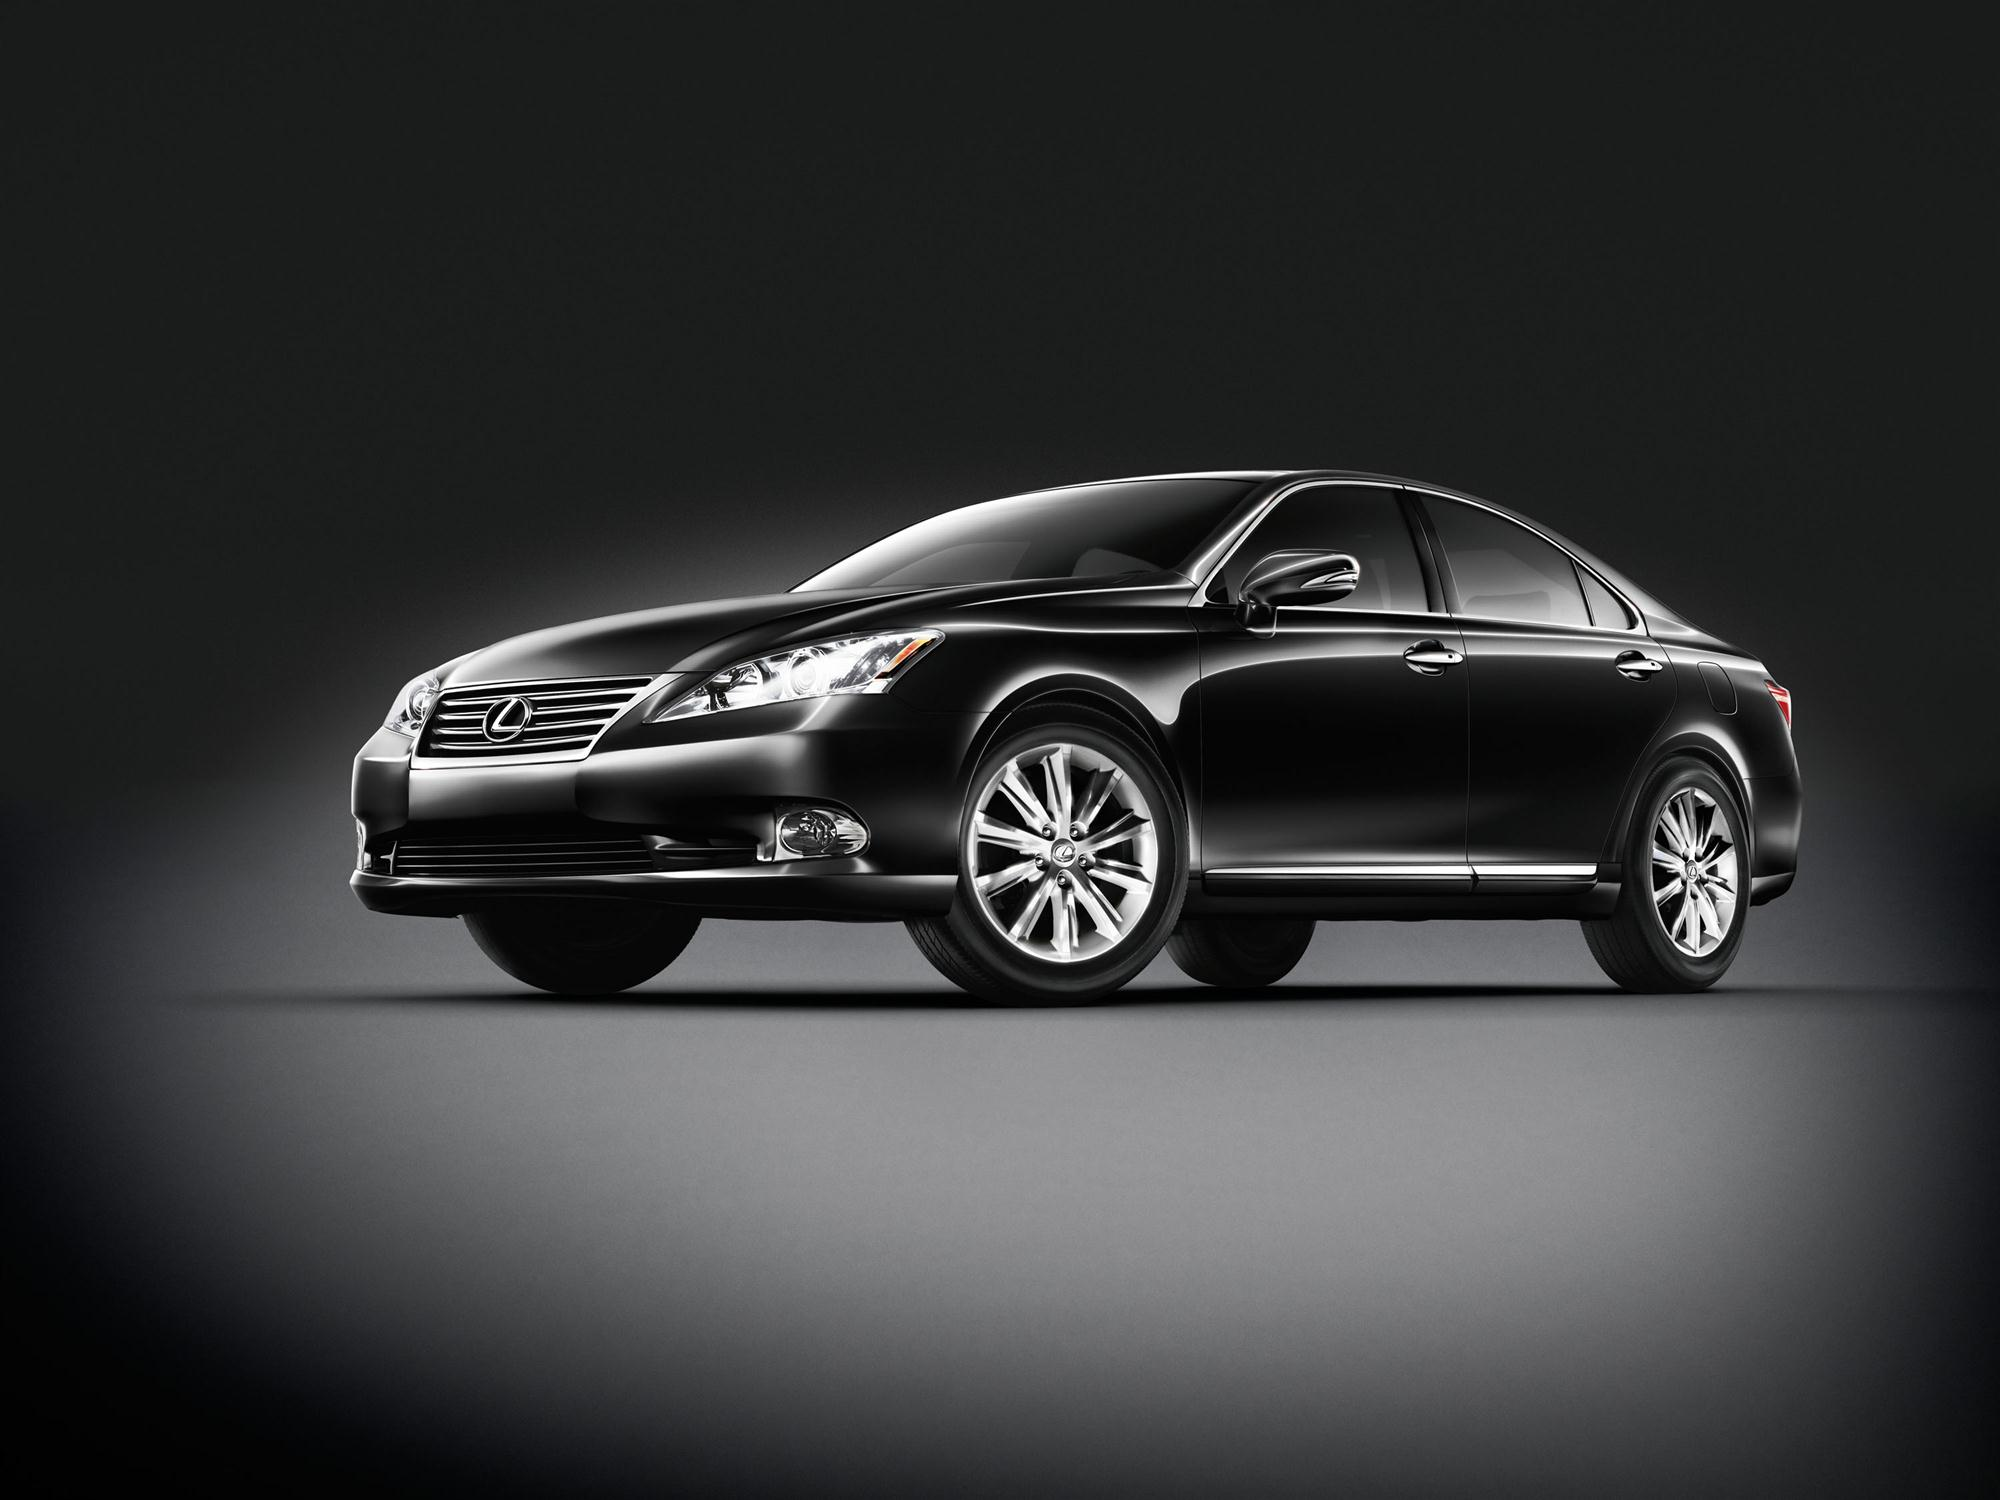 2012 lexus es 350 review ratings specs prices and photos the car connection. Black Bedroom Furniture Sets. Home Design Ideas